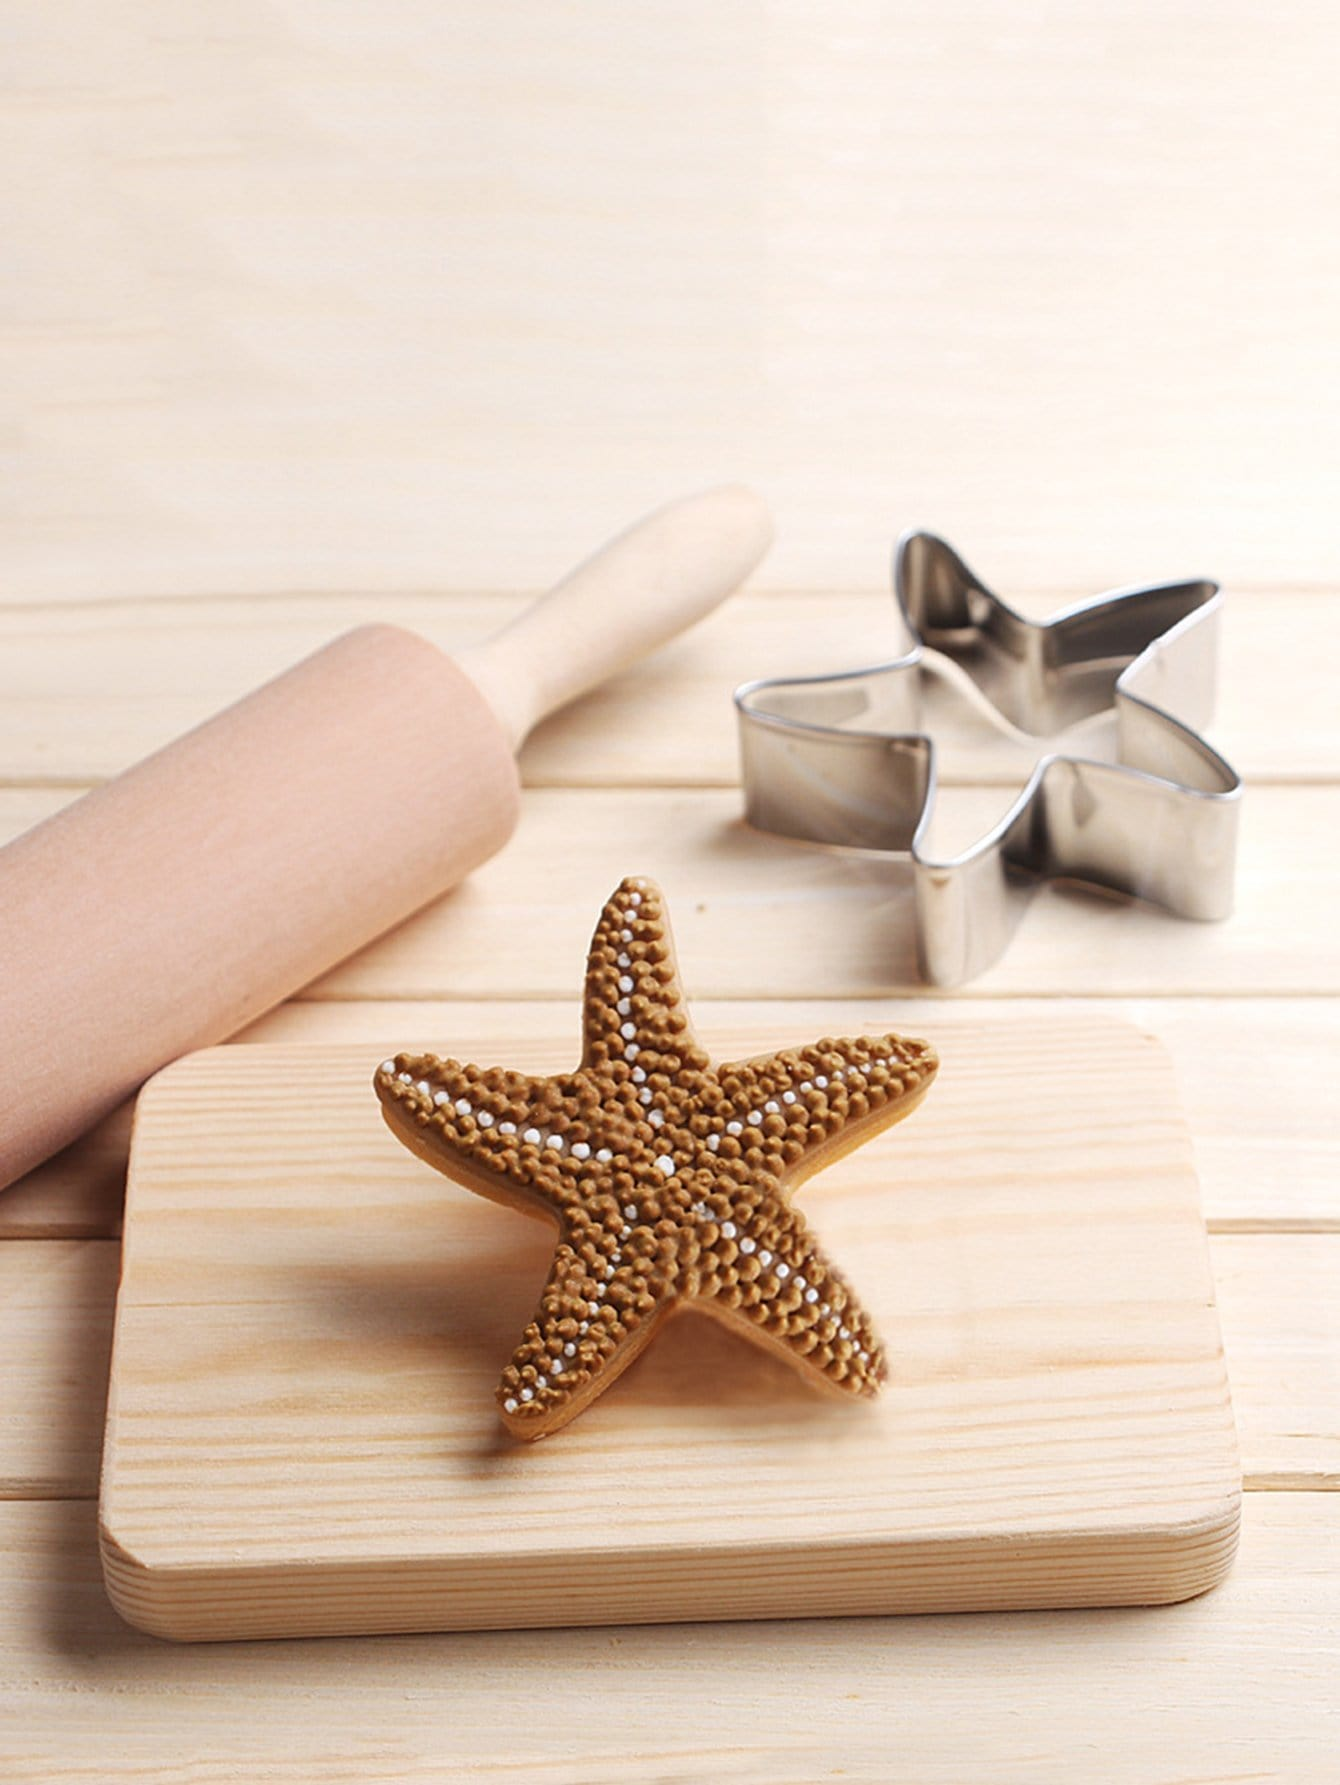 Stainless Steel Cookie Cutter Starfish Mold 1pc stainless steel star cookie cutter